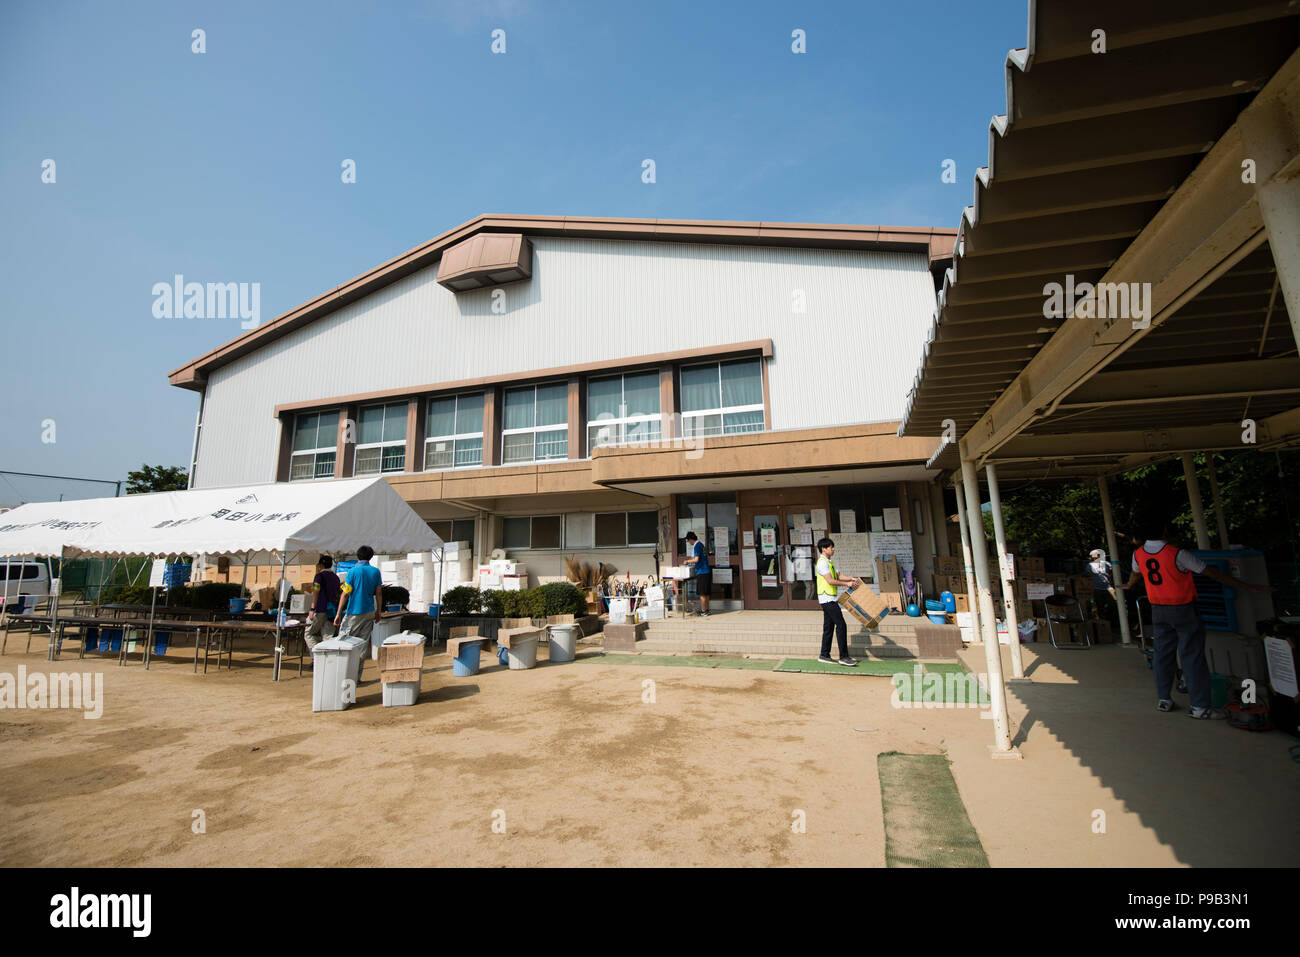 Okayama, Japan. 17th July 2018. Volunteers work outside the gymnasium at Okada Elementary School, a temporary shelter for flood victims in Mabicho, Kurashiki, Okayama Prefecture, Japan. More than 200 people died in floods and landslides caused by torrential rains more than a week ago. On Sunday, the government announced the weather event would be designated an extremely severe disaster, freeing up recovery funds for the affected areas. Cleanup and recovery efforts have been hampered by extreme heat. Credit: Aflo Co. Ltd./Alamy Live News - Stock Image